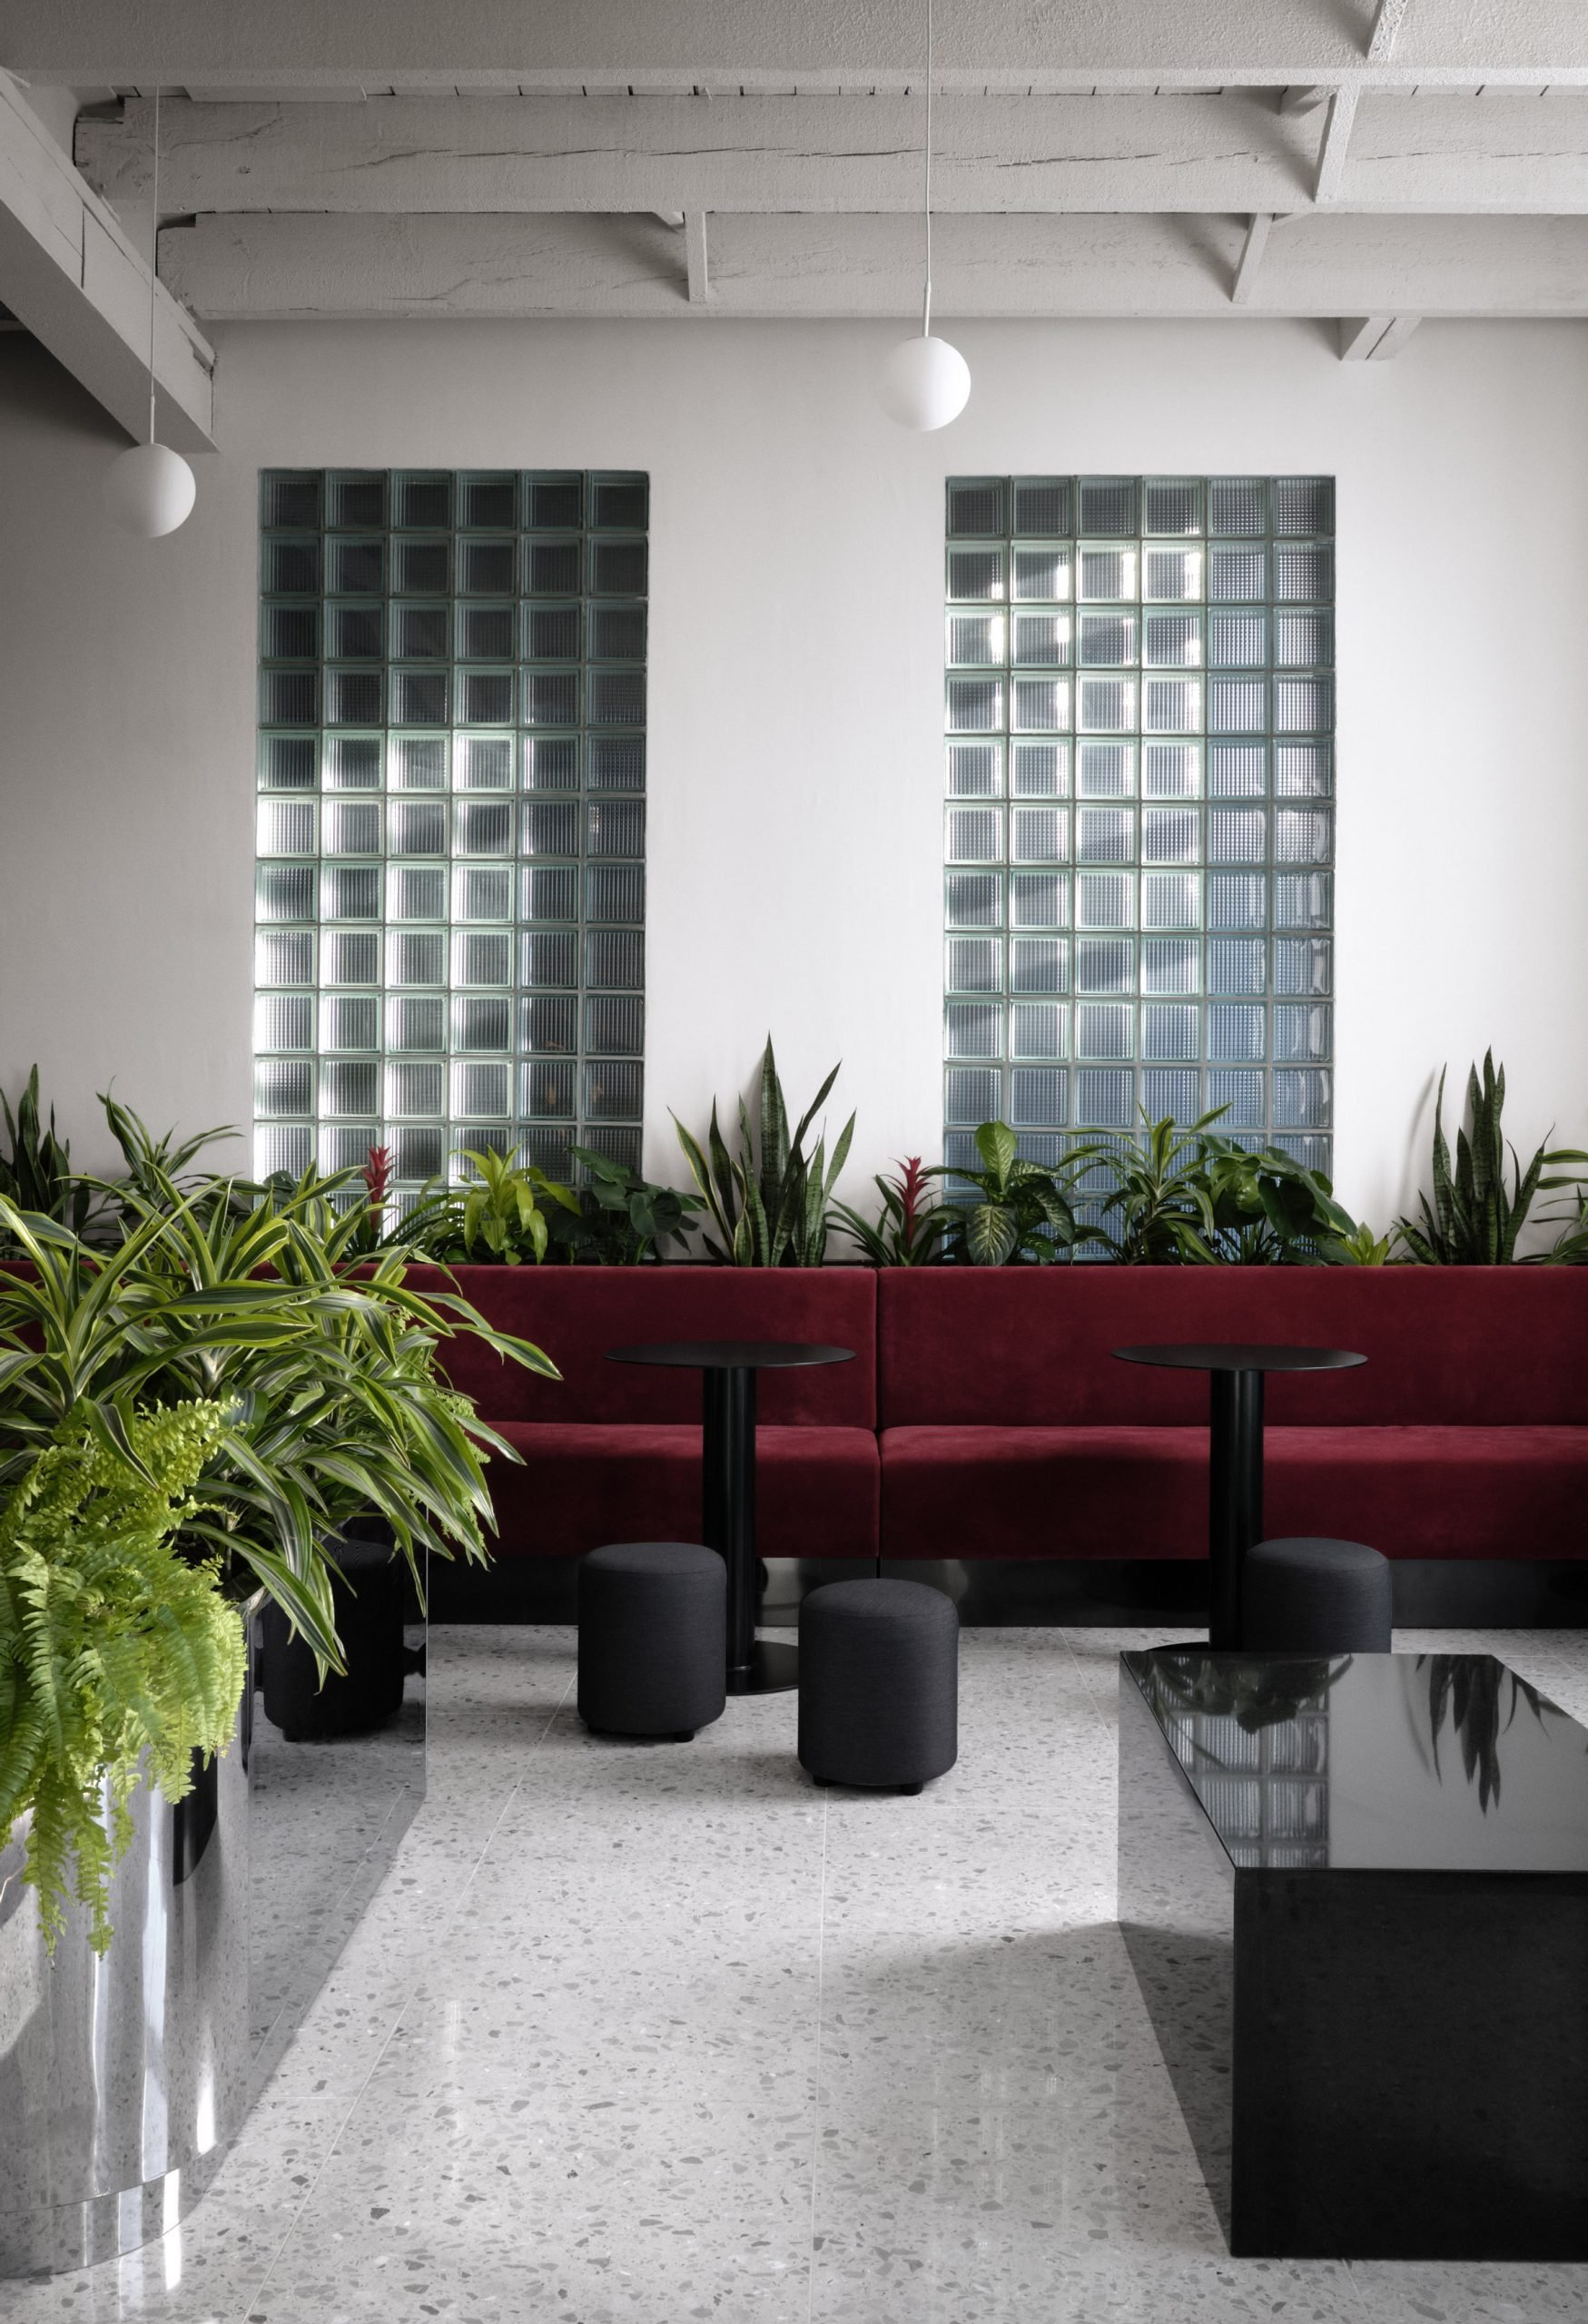 Ivy Studio put a glass-brick wall in the reception